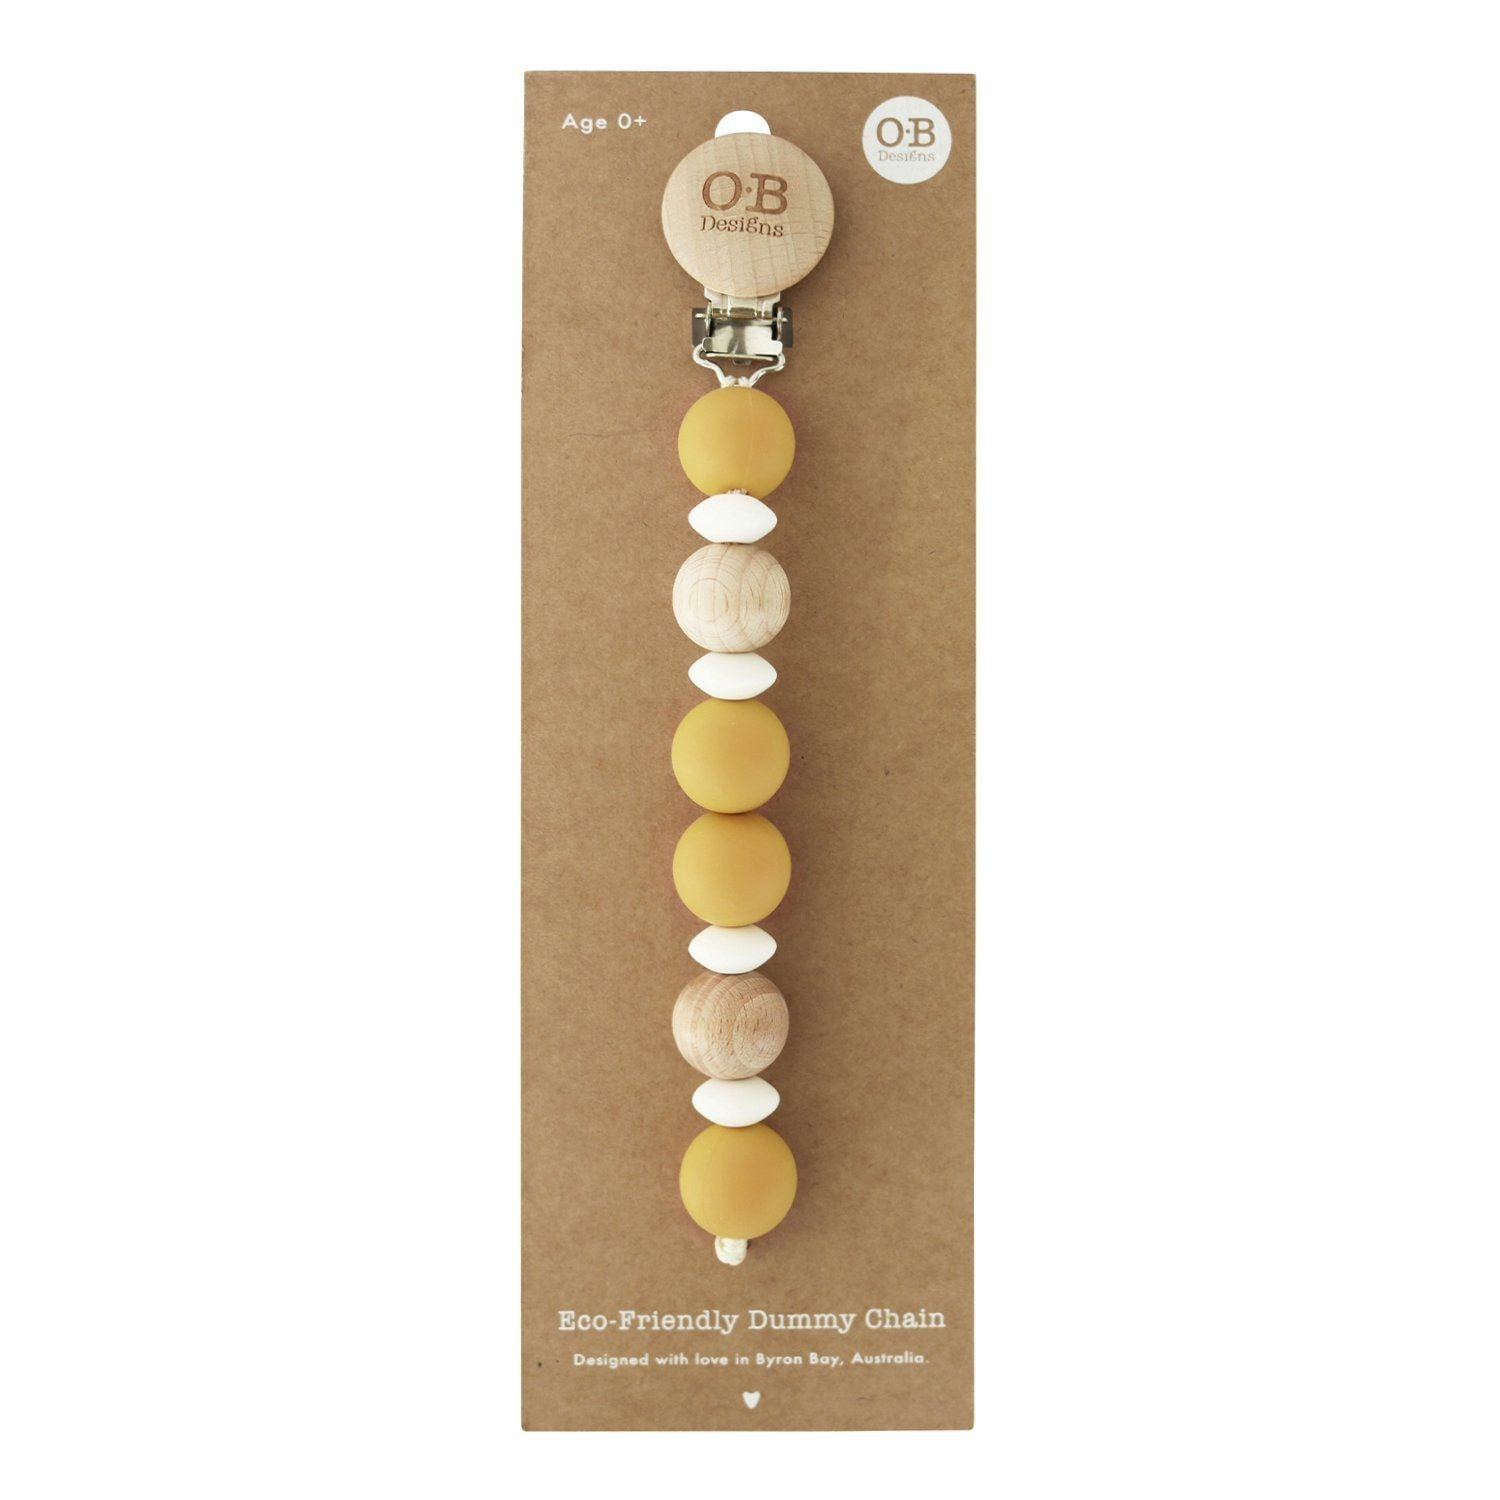 Tumeric Eco-Friendly Dummy Chain